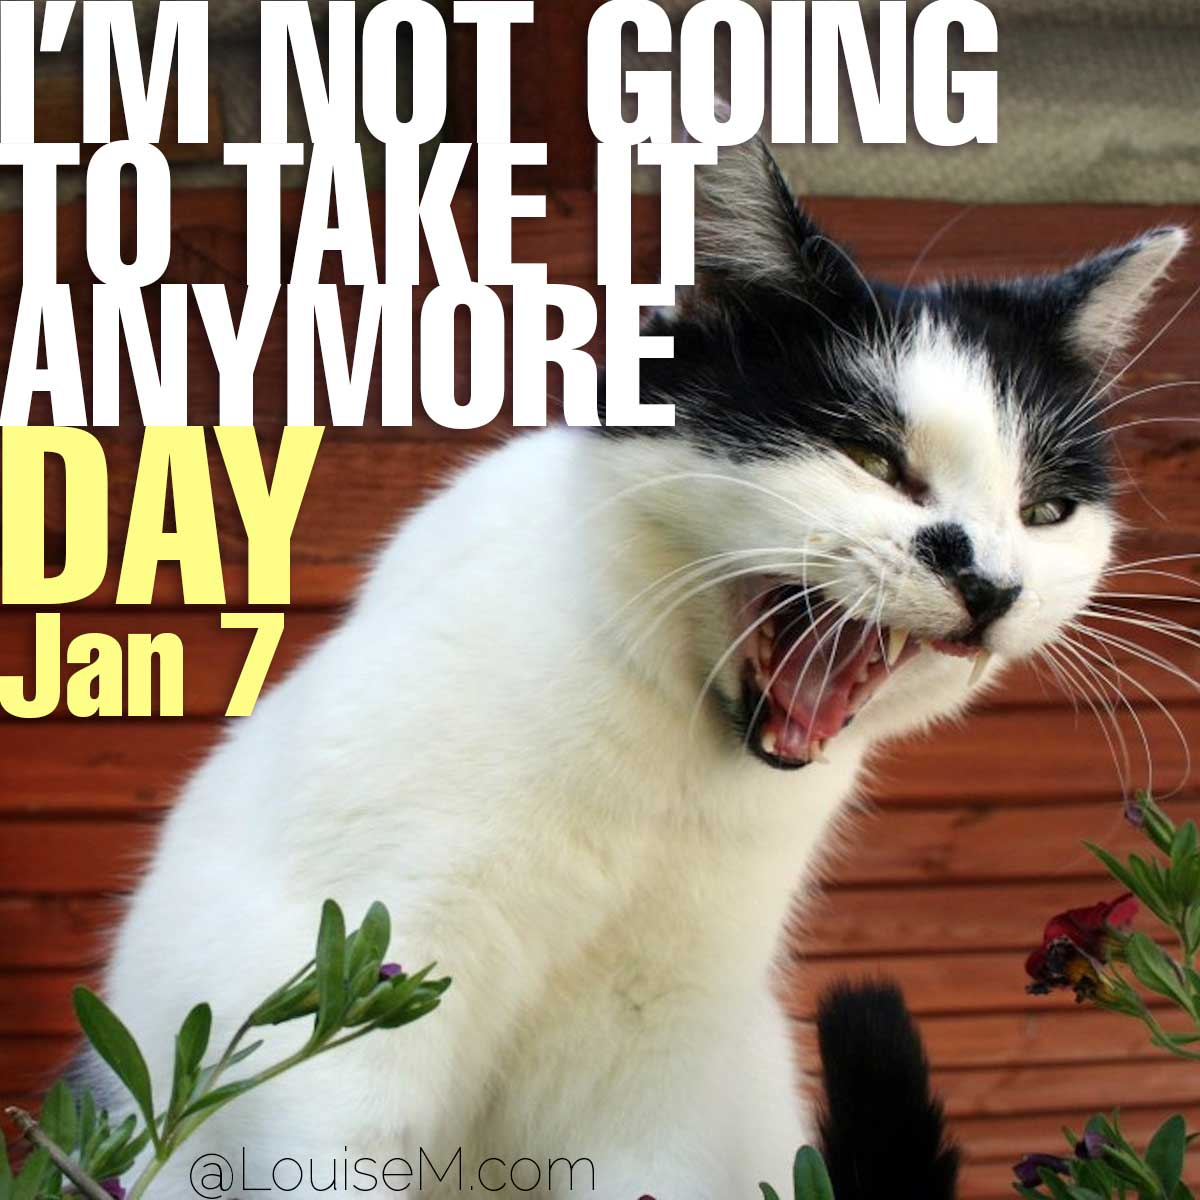 I'm Not Going to Take it Anymore Day text on photo of angry cat.